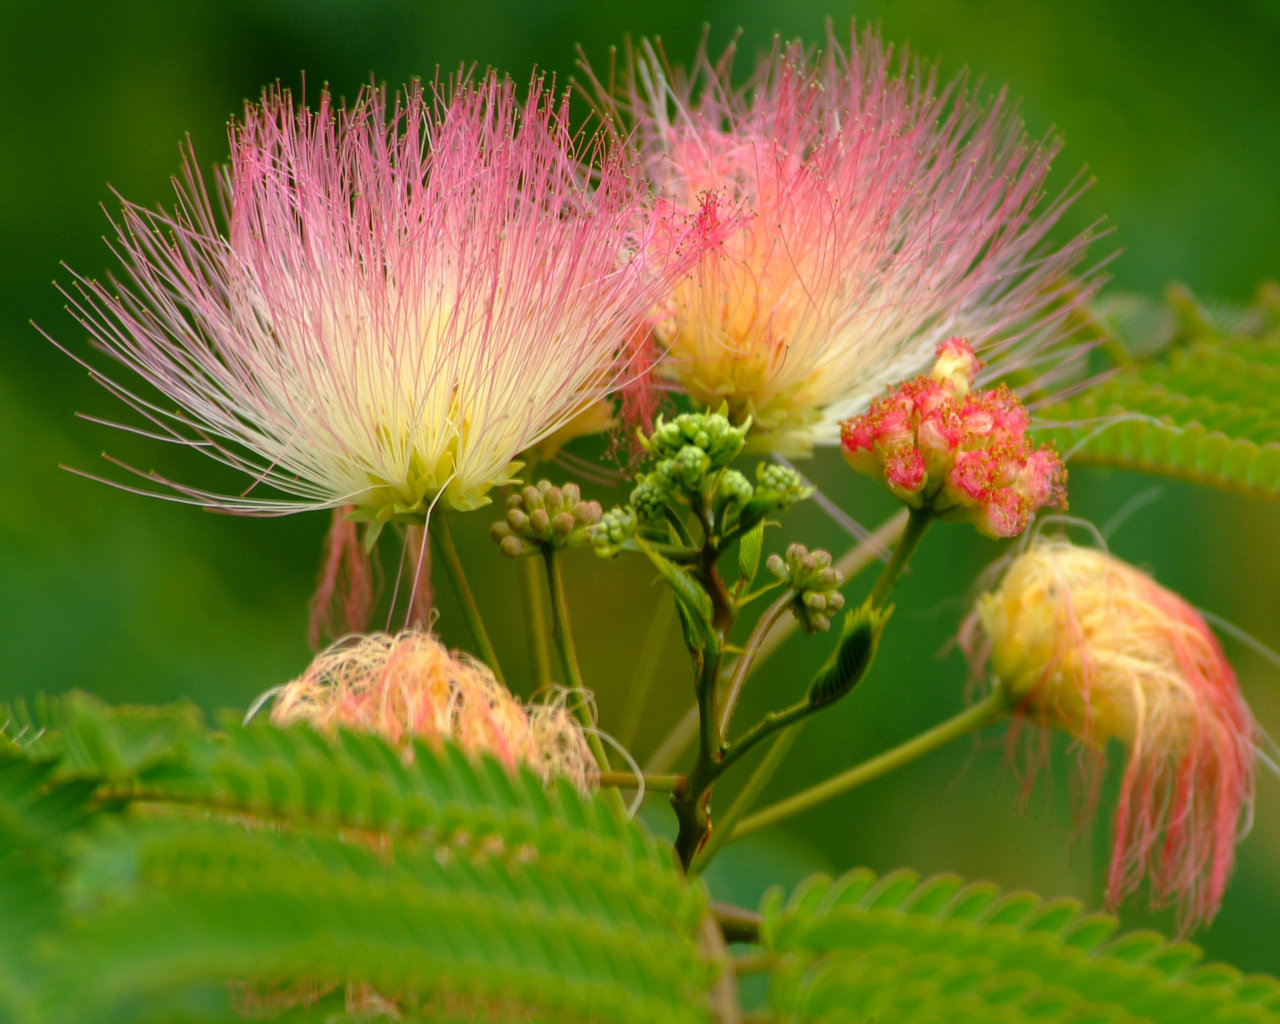 Albizia persian silk tree flower lausanne albizia persian silk tree flower mightylinksfo